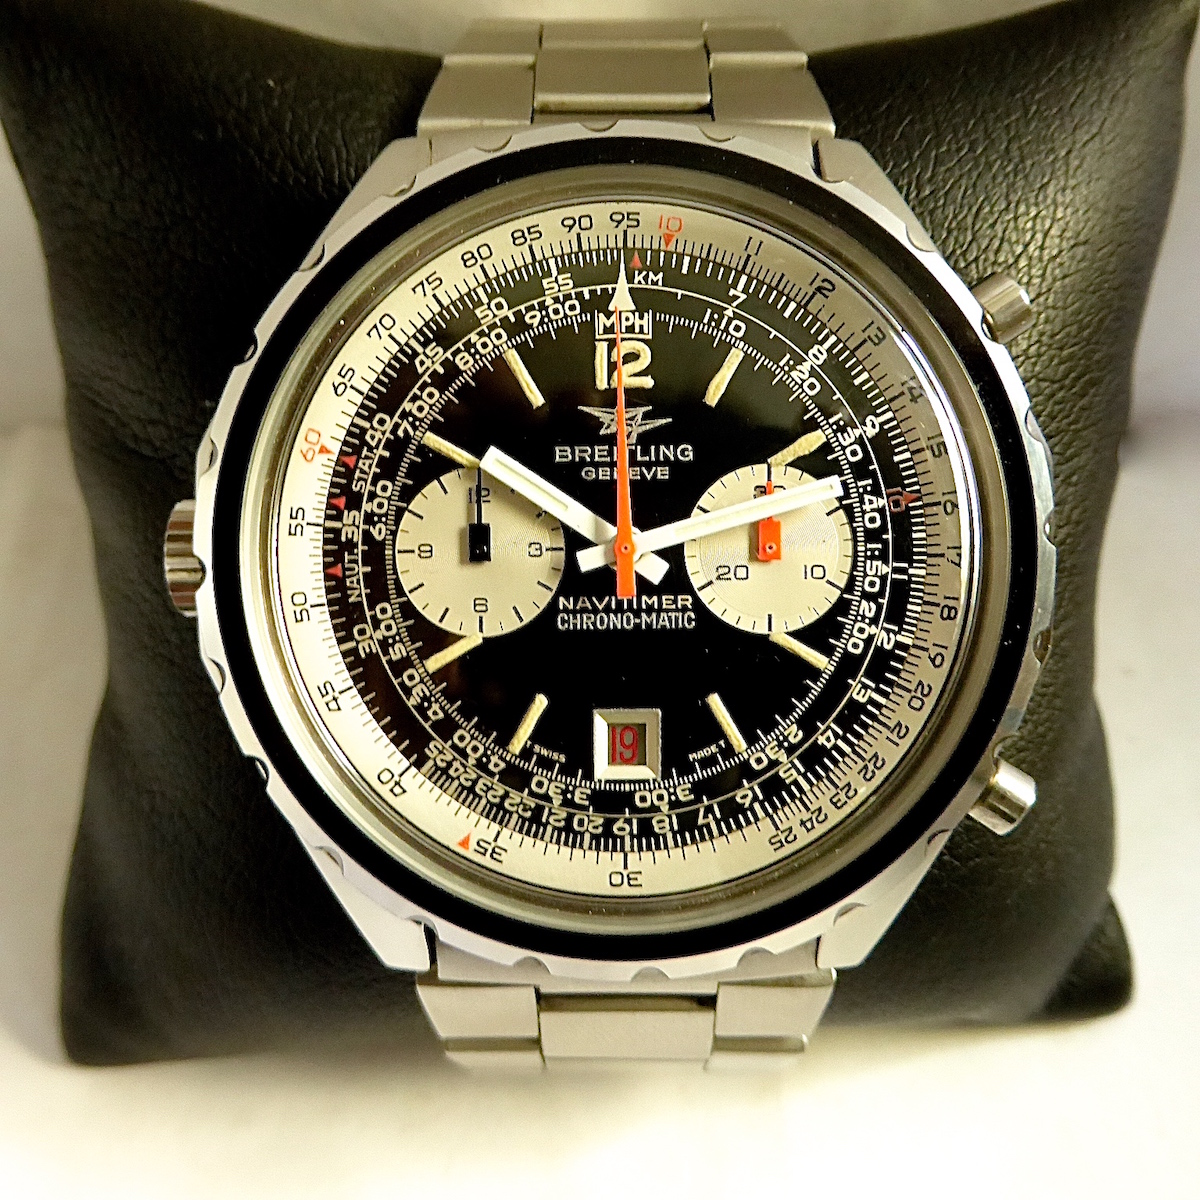 Breitling Navitimer 1970s Chronomatic - 5 Cool Finds Catawiki - 2